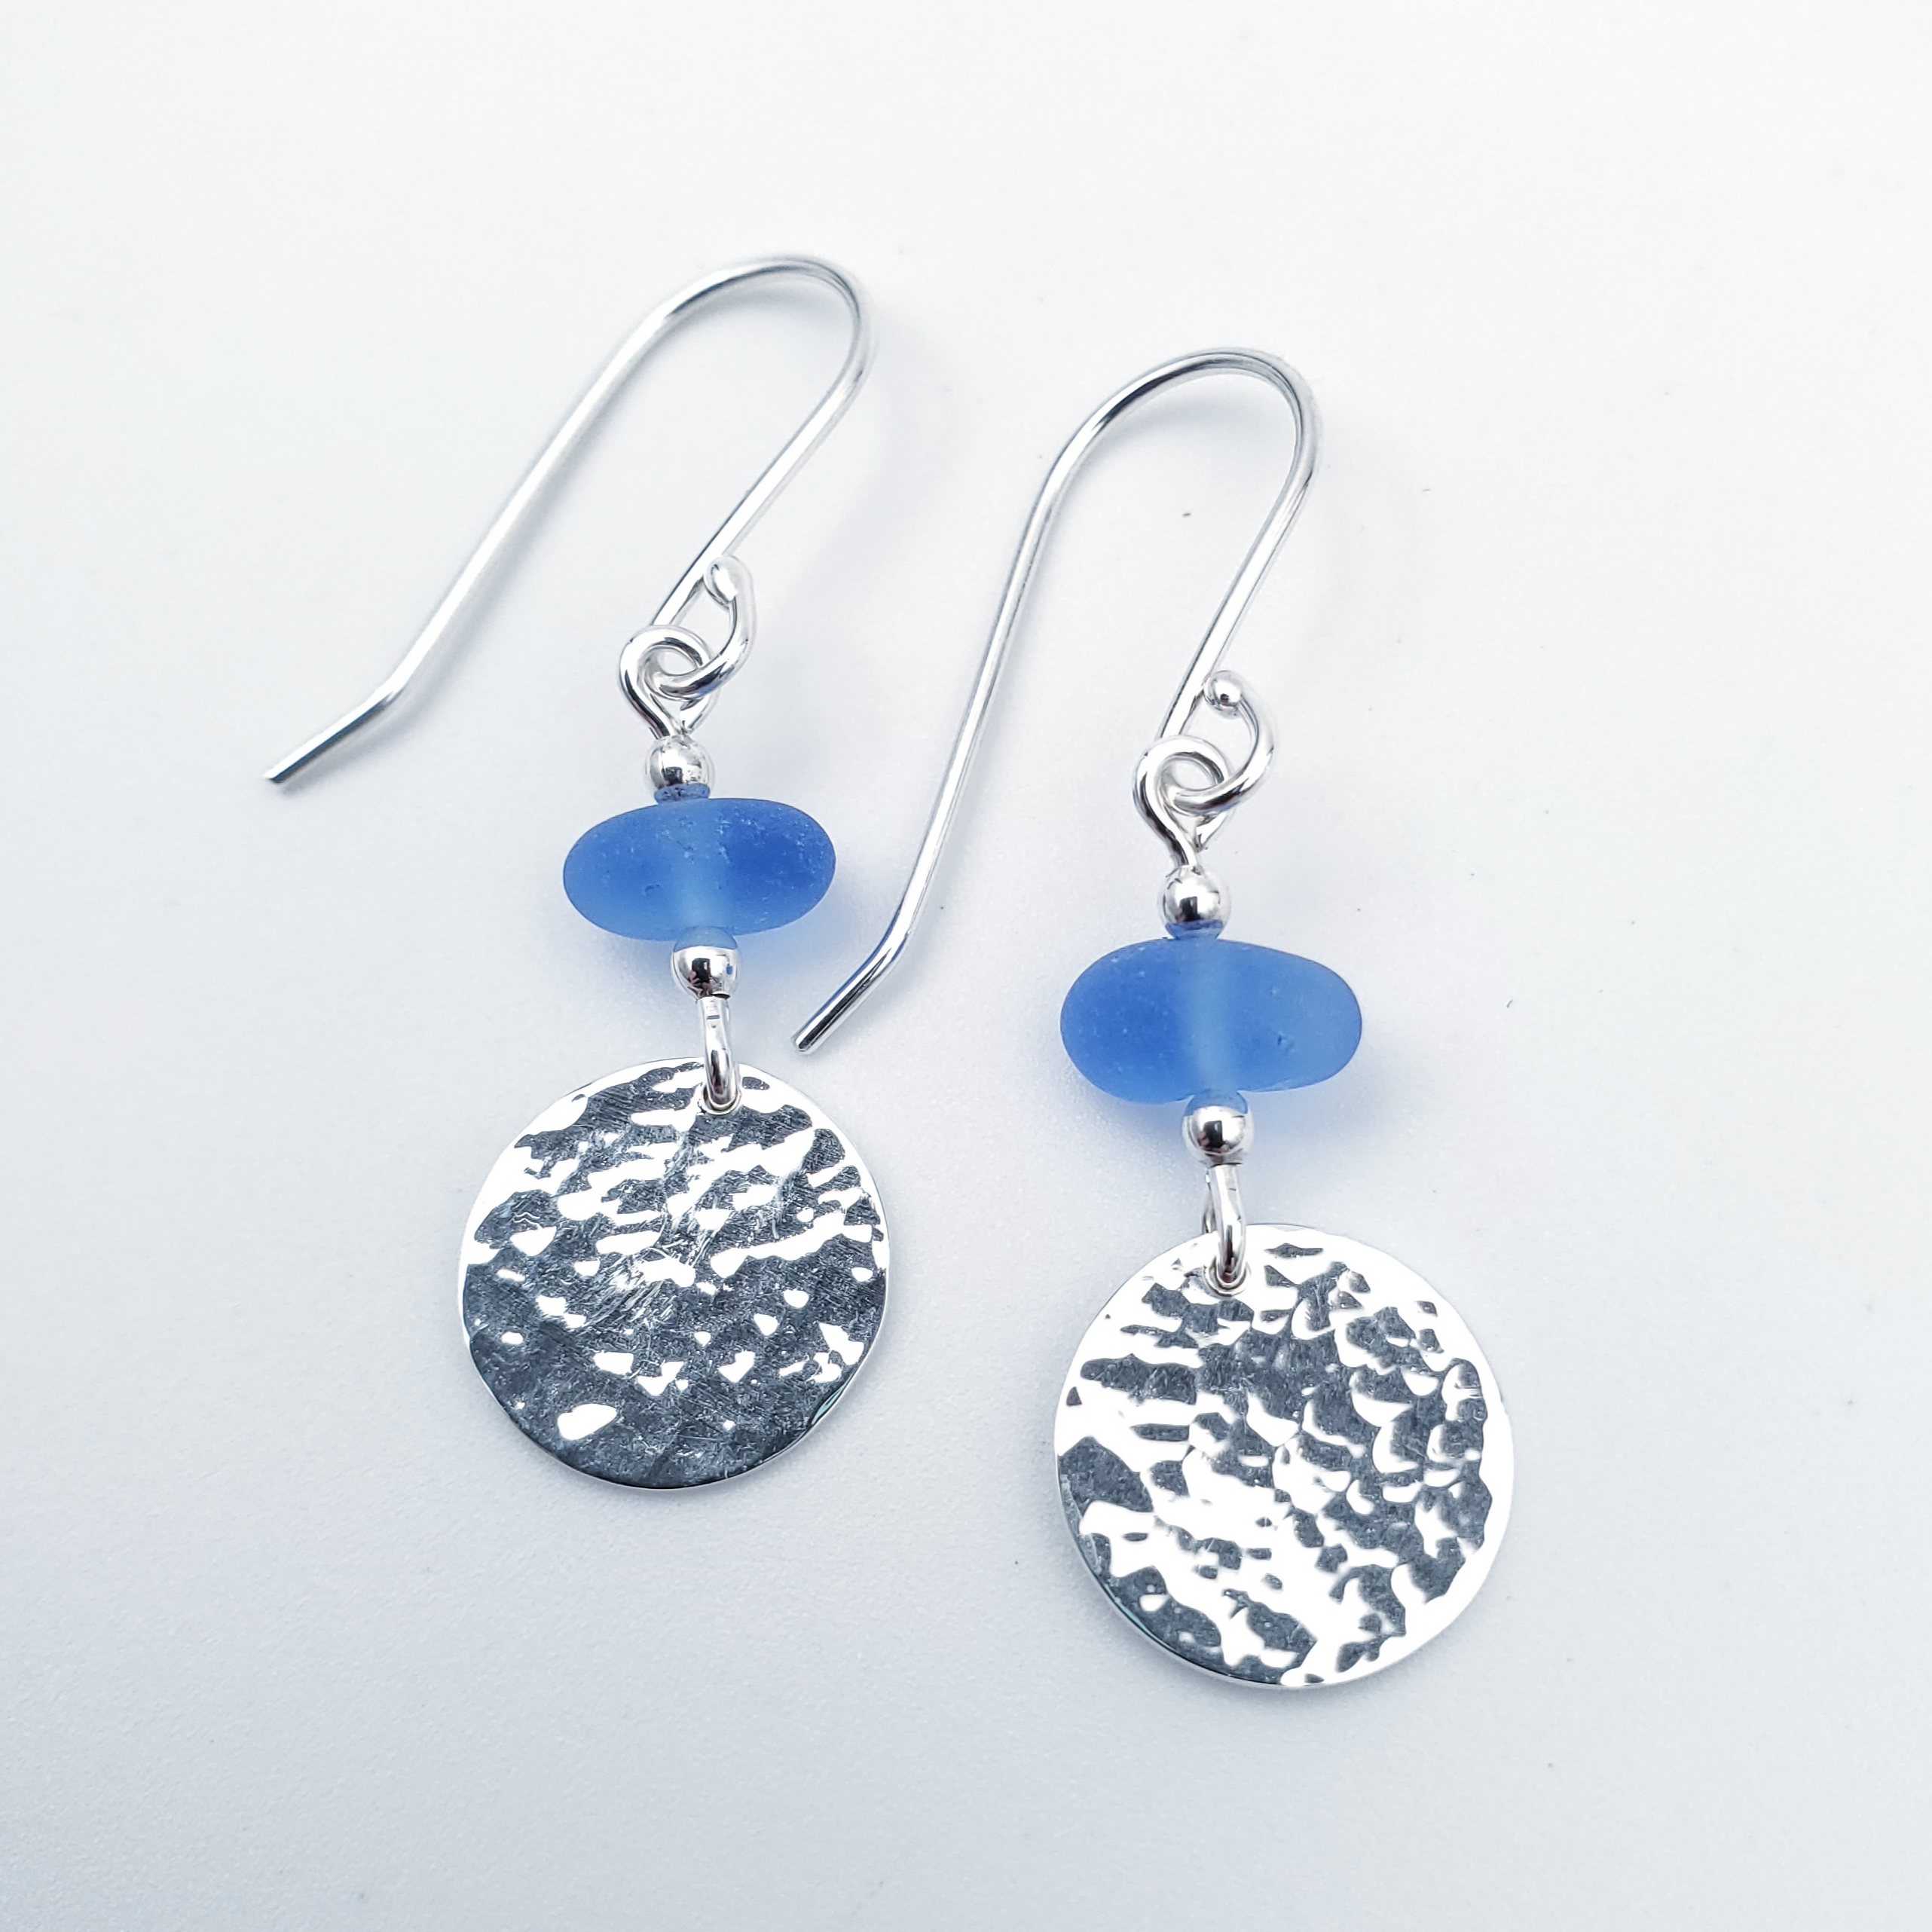 Blue sea glass and hammered sterling silver earrings